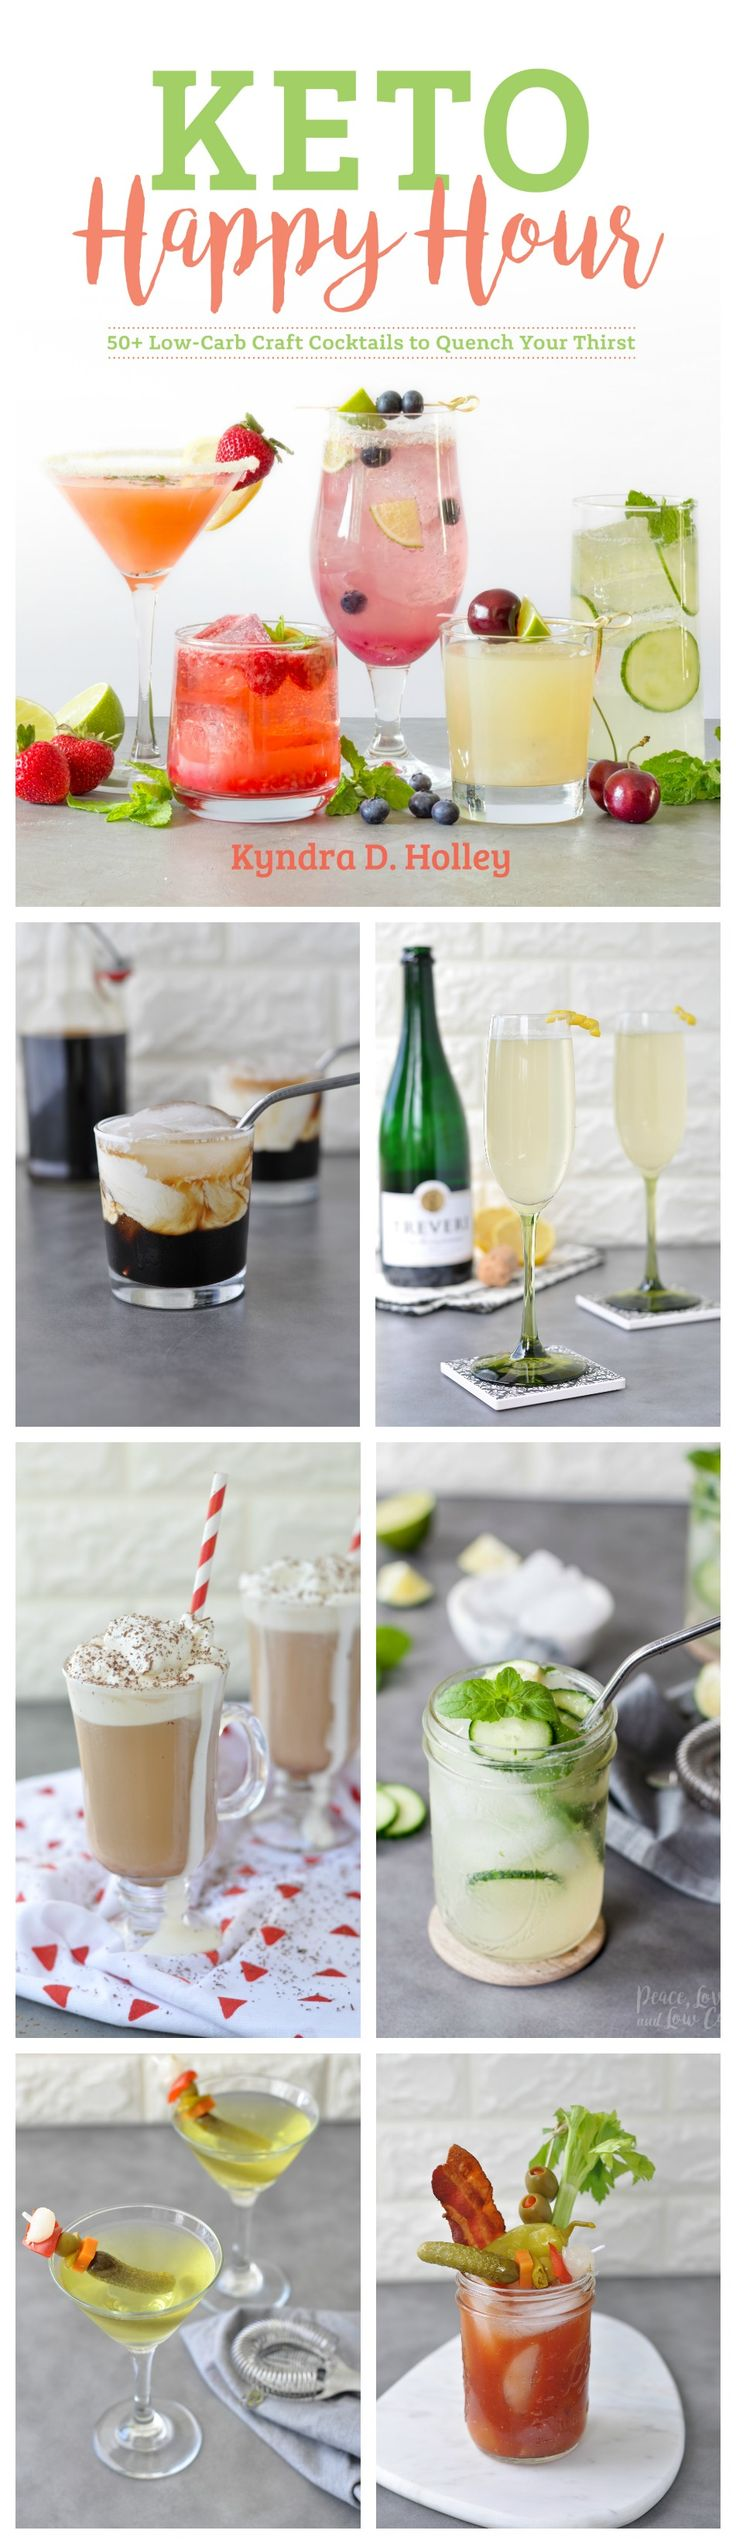 Keto Happy Hour - 50  Low Carb Craft Cocktails to Quench Your Thirst  via @PeaceLoveLoCarb